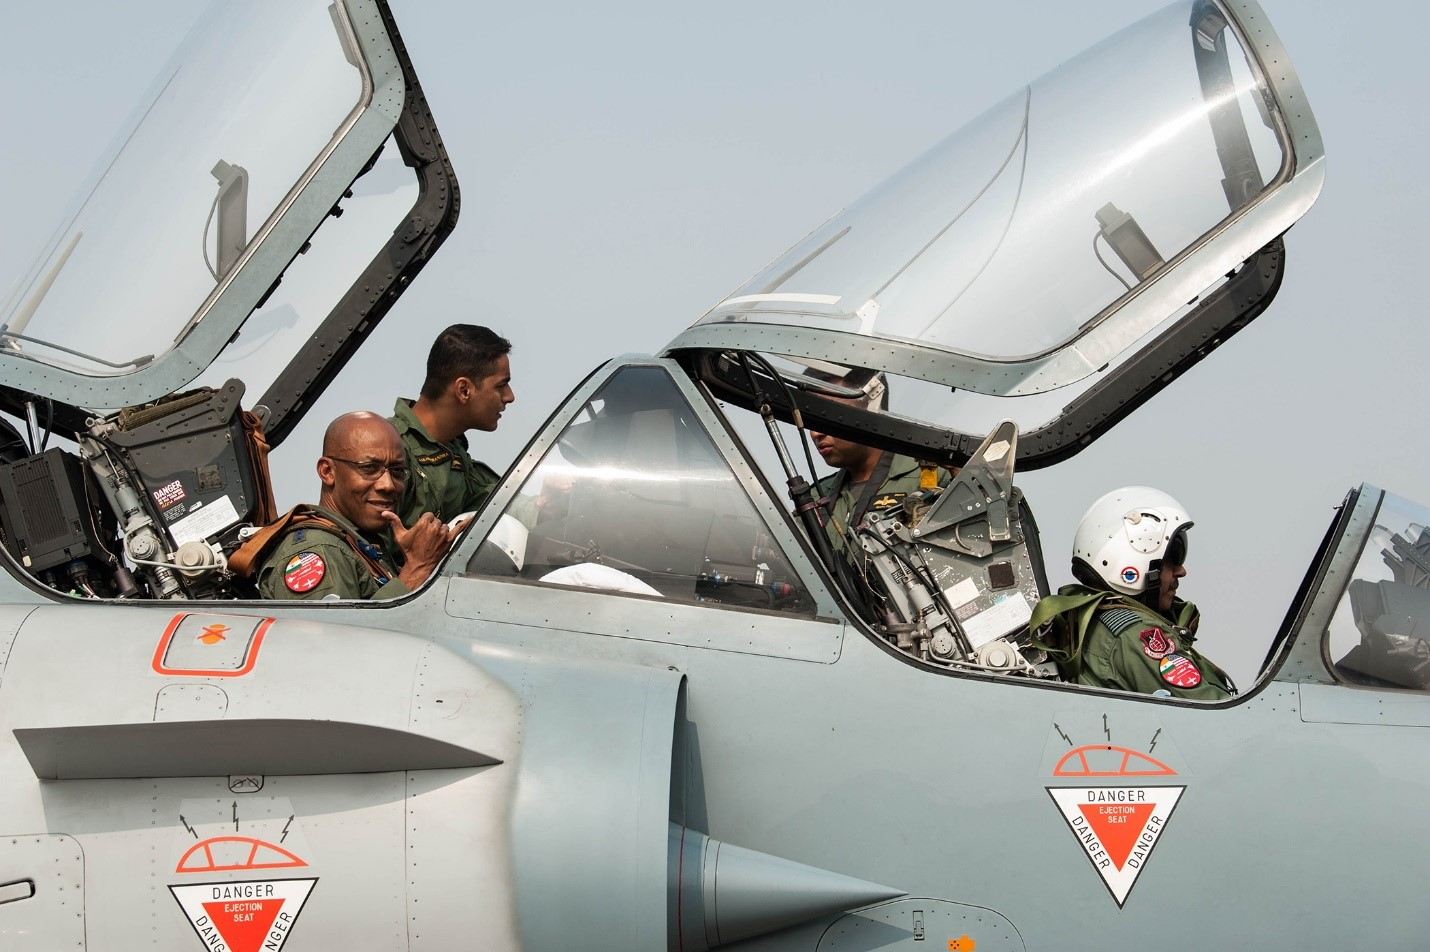 US Air Force Gen CQ Brown, Jr., Pacific Air Forces commander, prepares for an orientation flight in an IAF Mirage 2000 at Cope India 19 at Kalaikunda Air Force Station, India, 14 December 2018